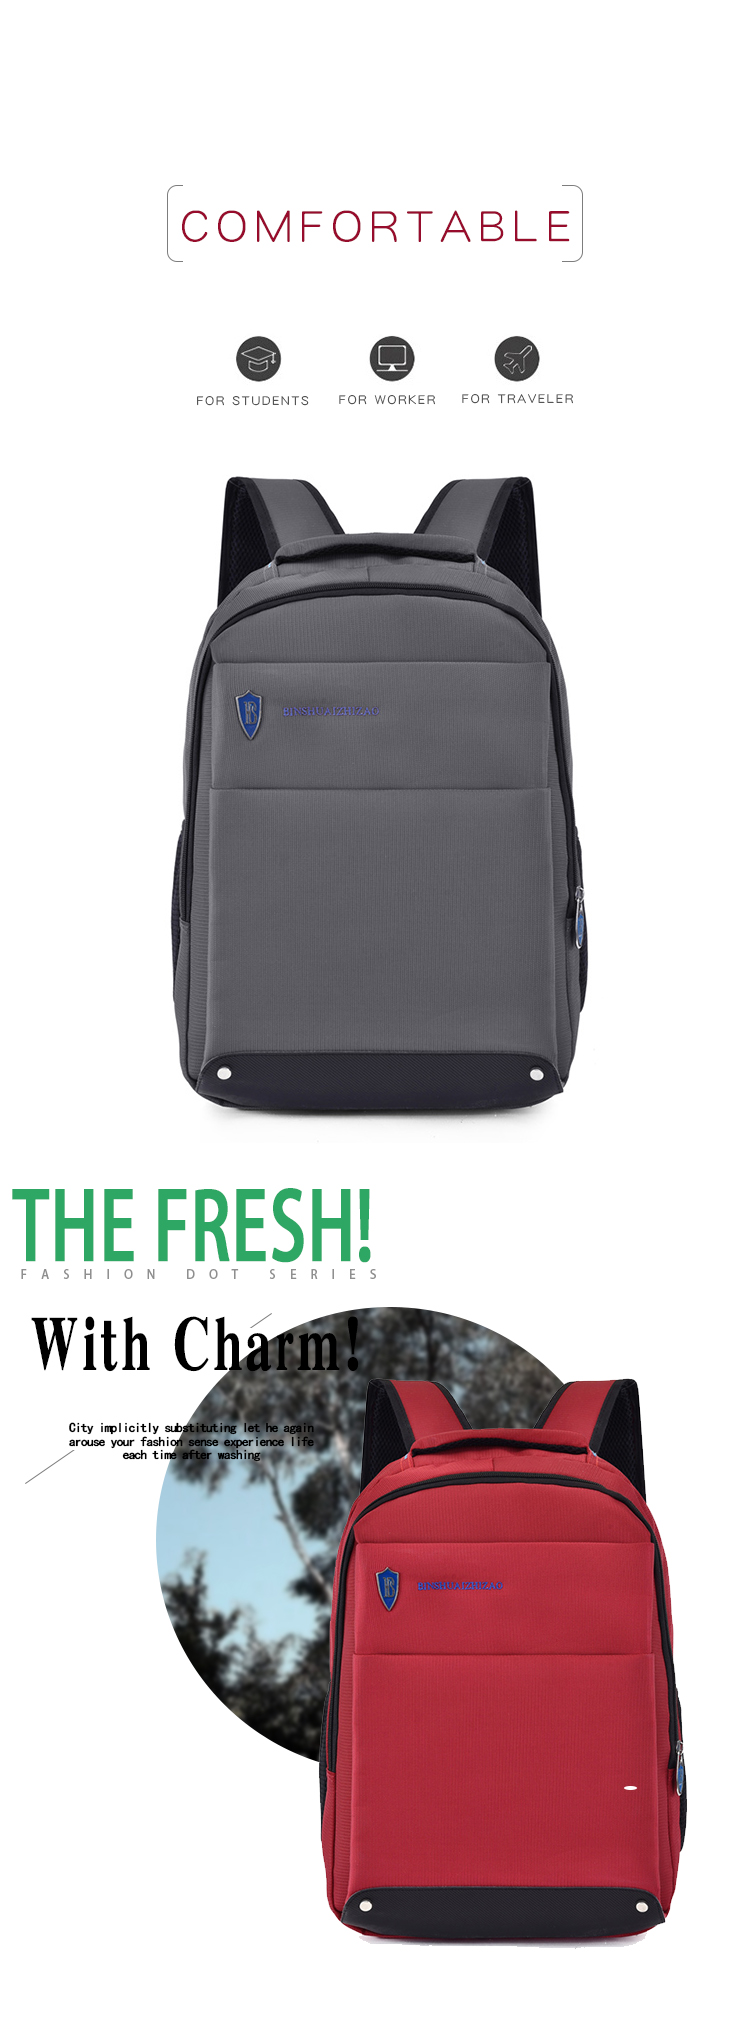 Computer Backpack with USB Charging Port back pack for Men Women laptop bag pack school 15 inch bag laptop